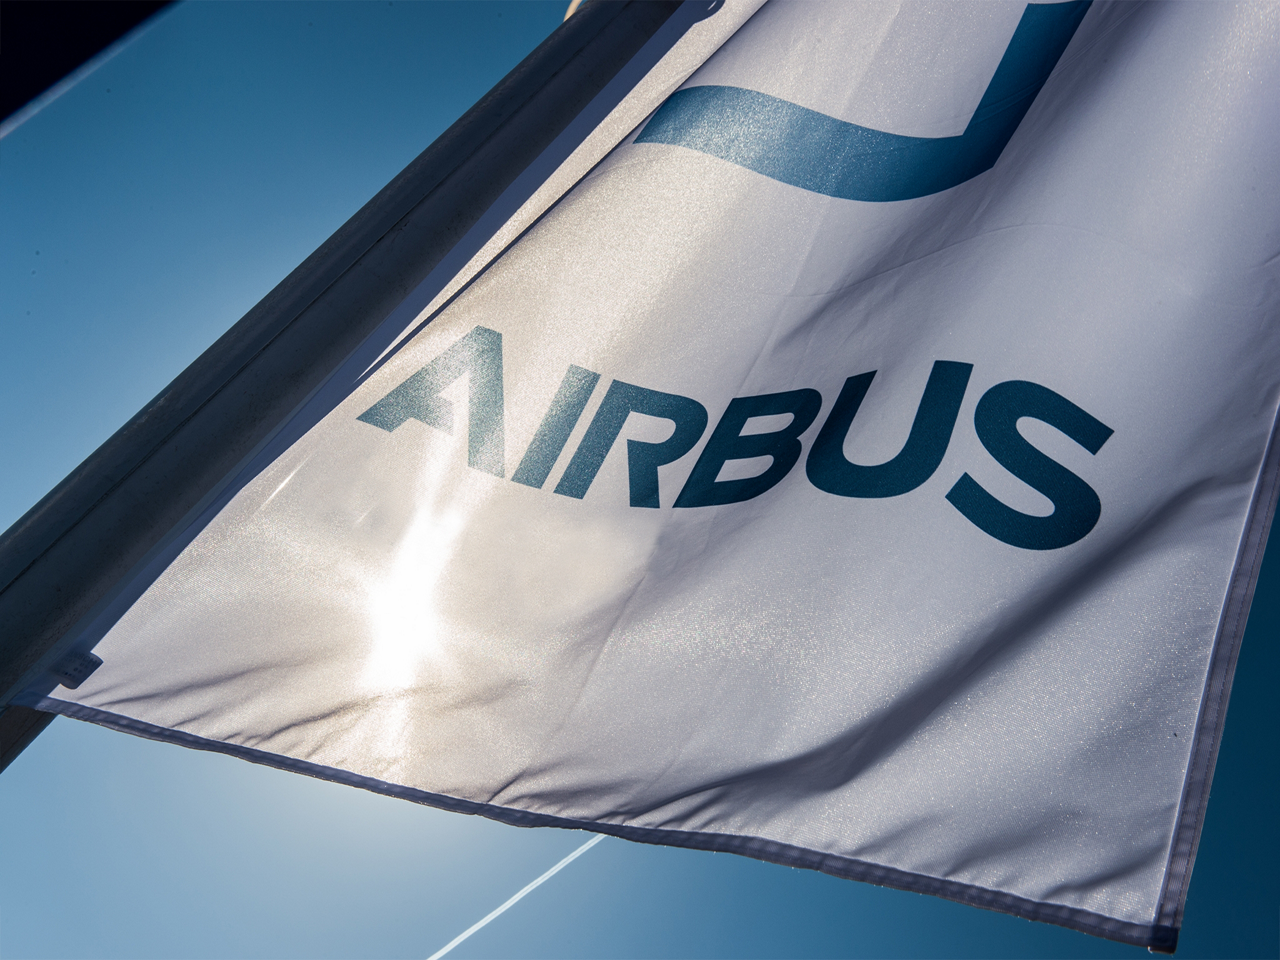 The Airbus logo as shown on a waving flag.